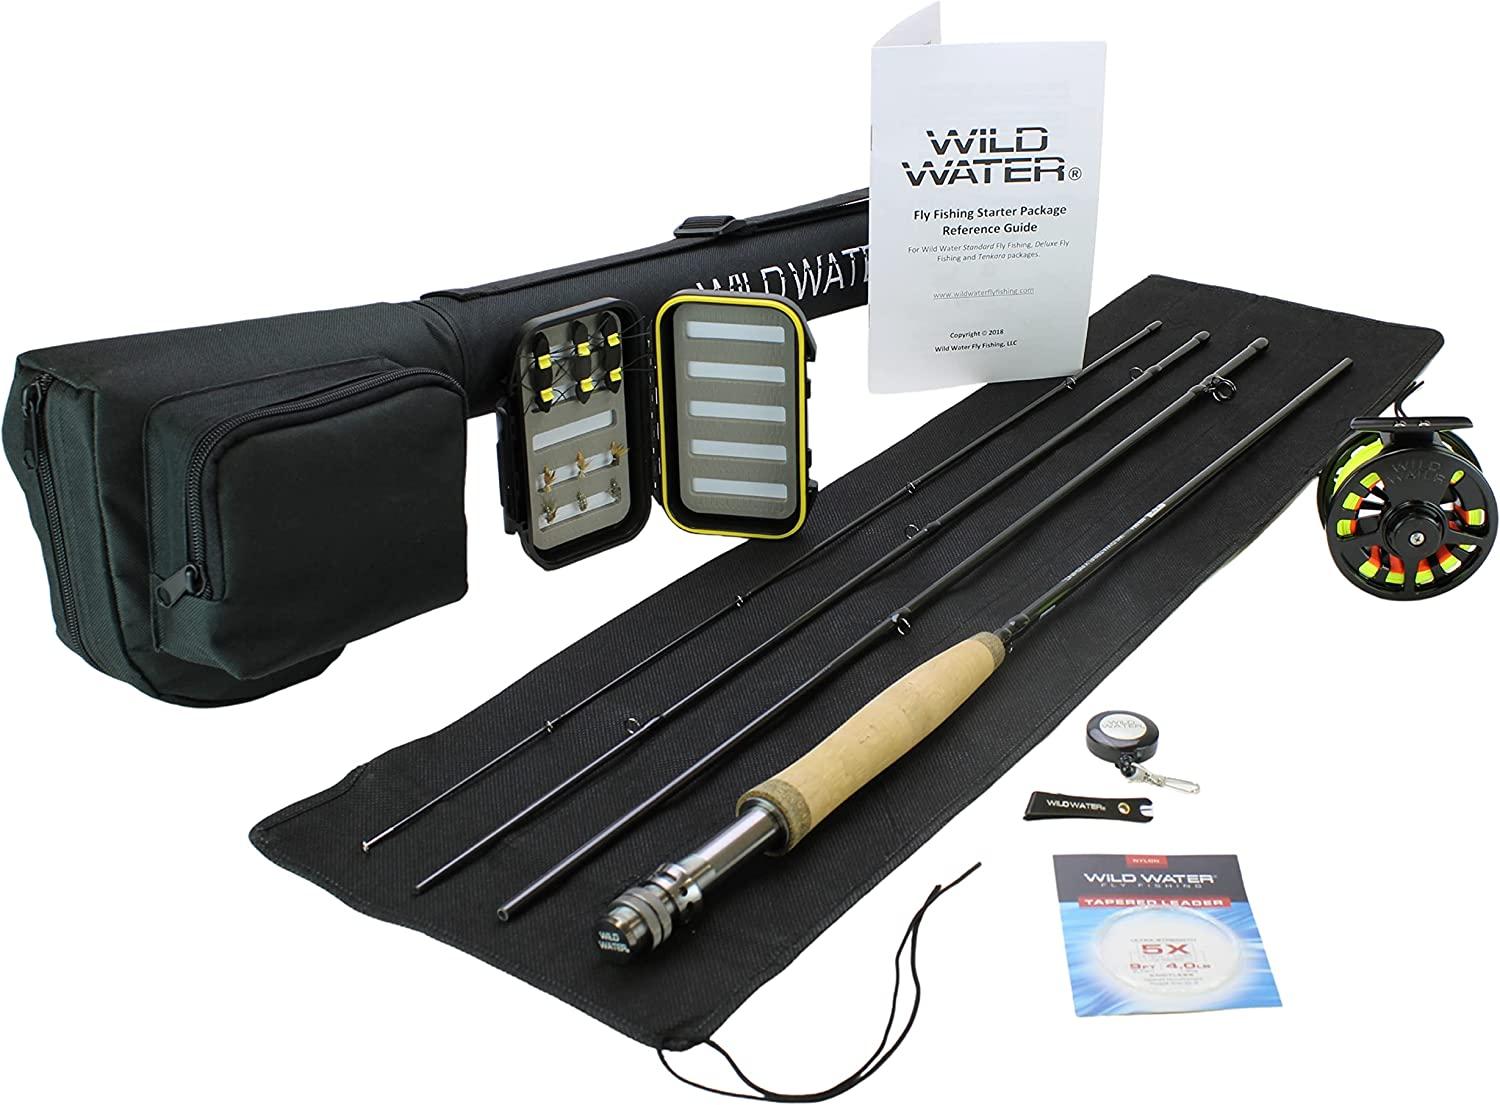 Wild Water Compact Fly Fishing Rod and Reel